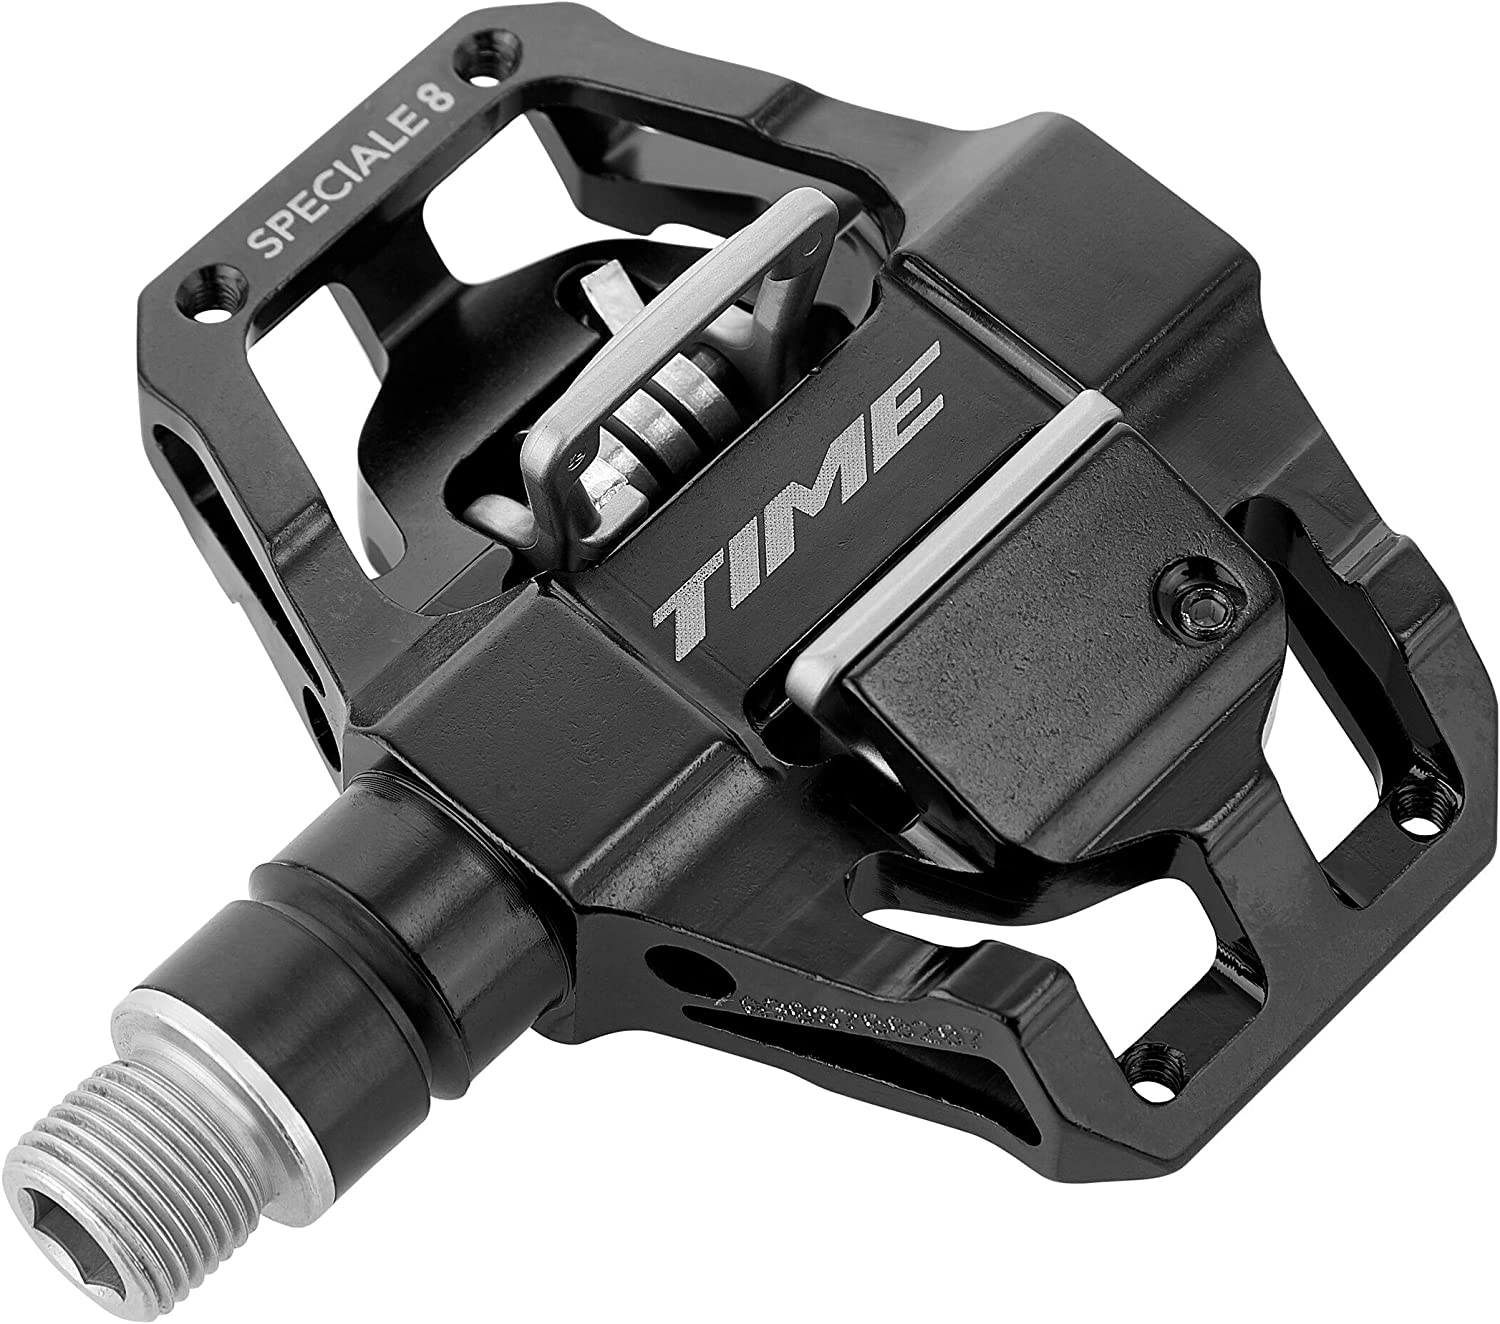 Time Speciale 8 MTB ATAC Pedals